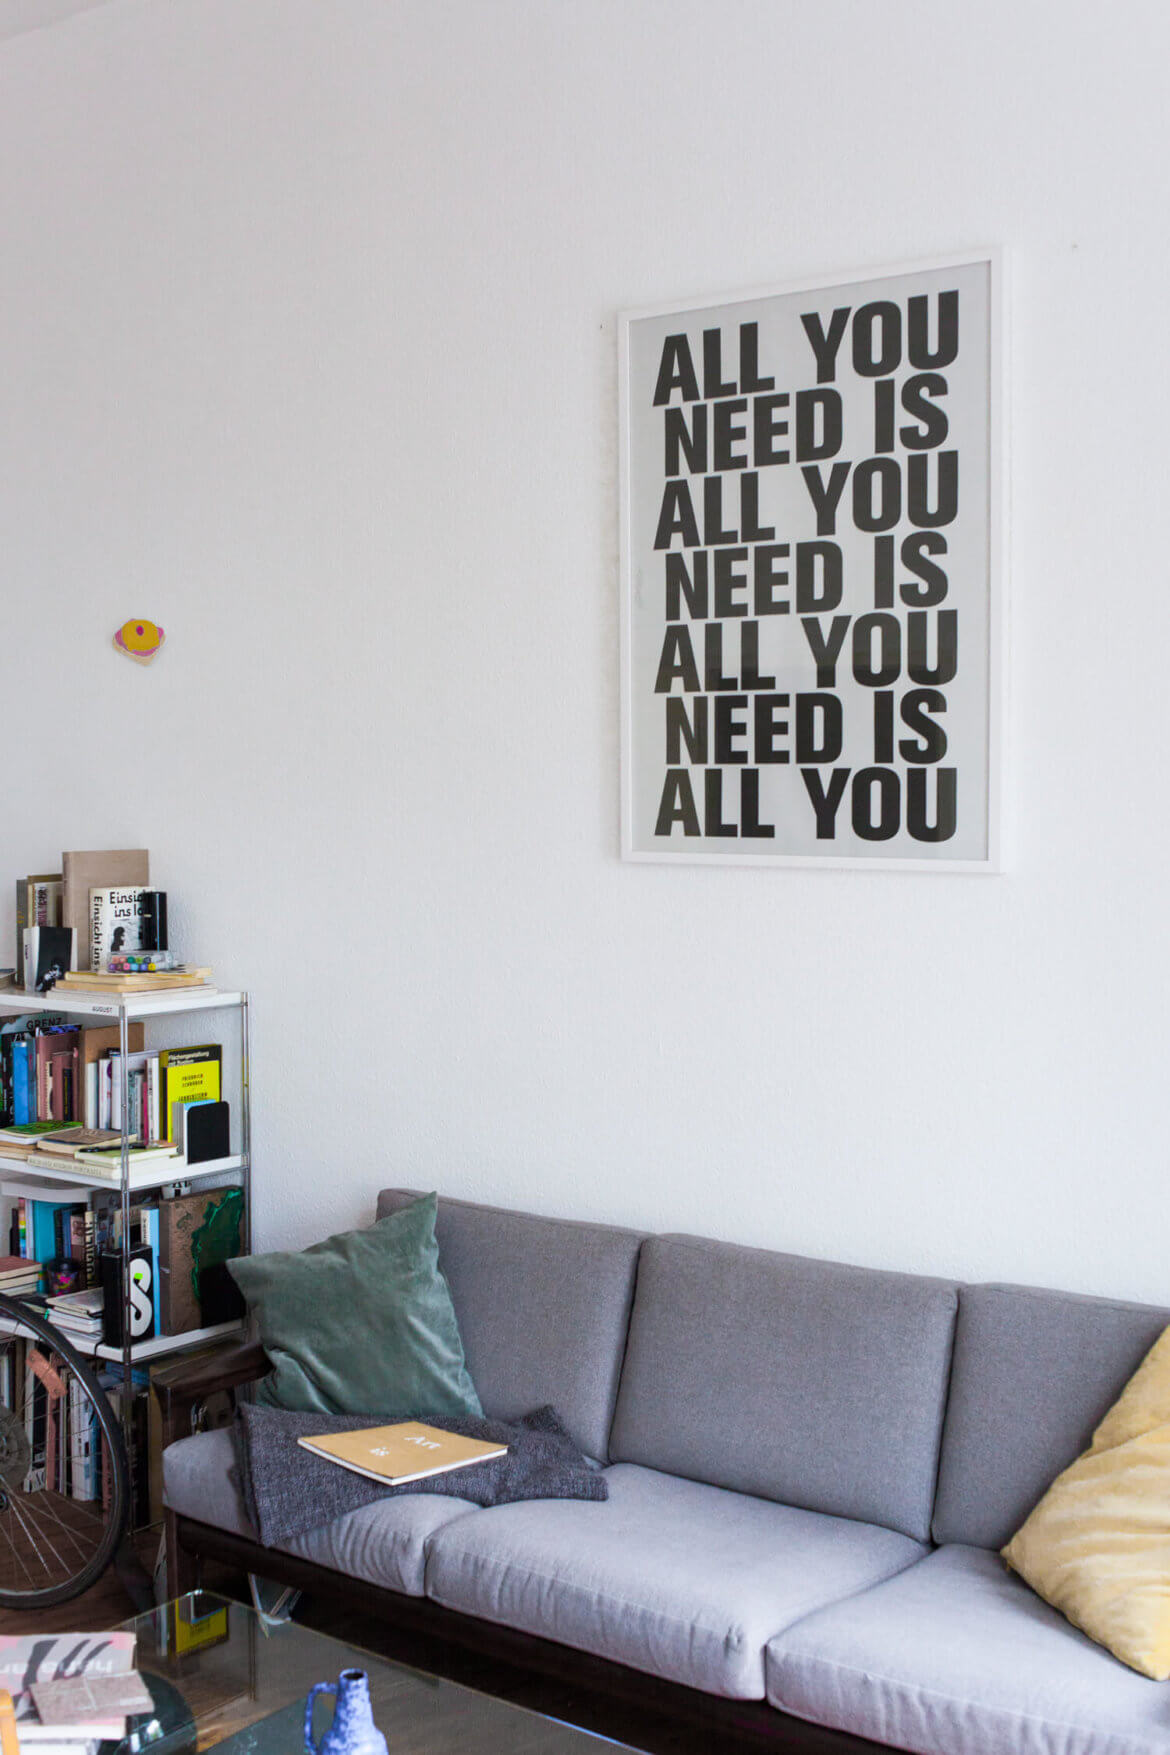 Daniel_Angermann_Poster_All_you_need_2 All you need is all you